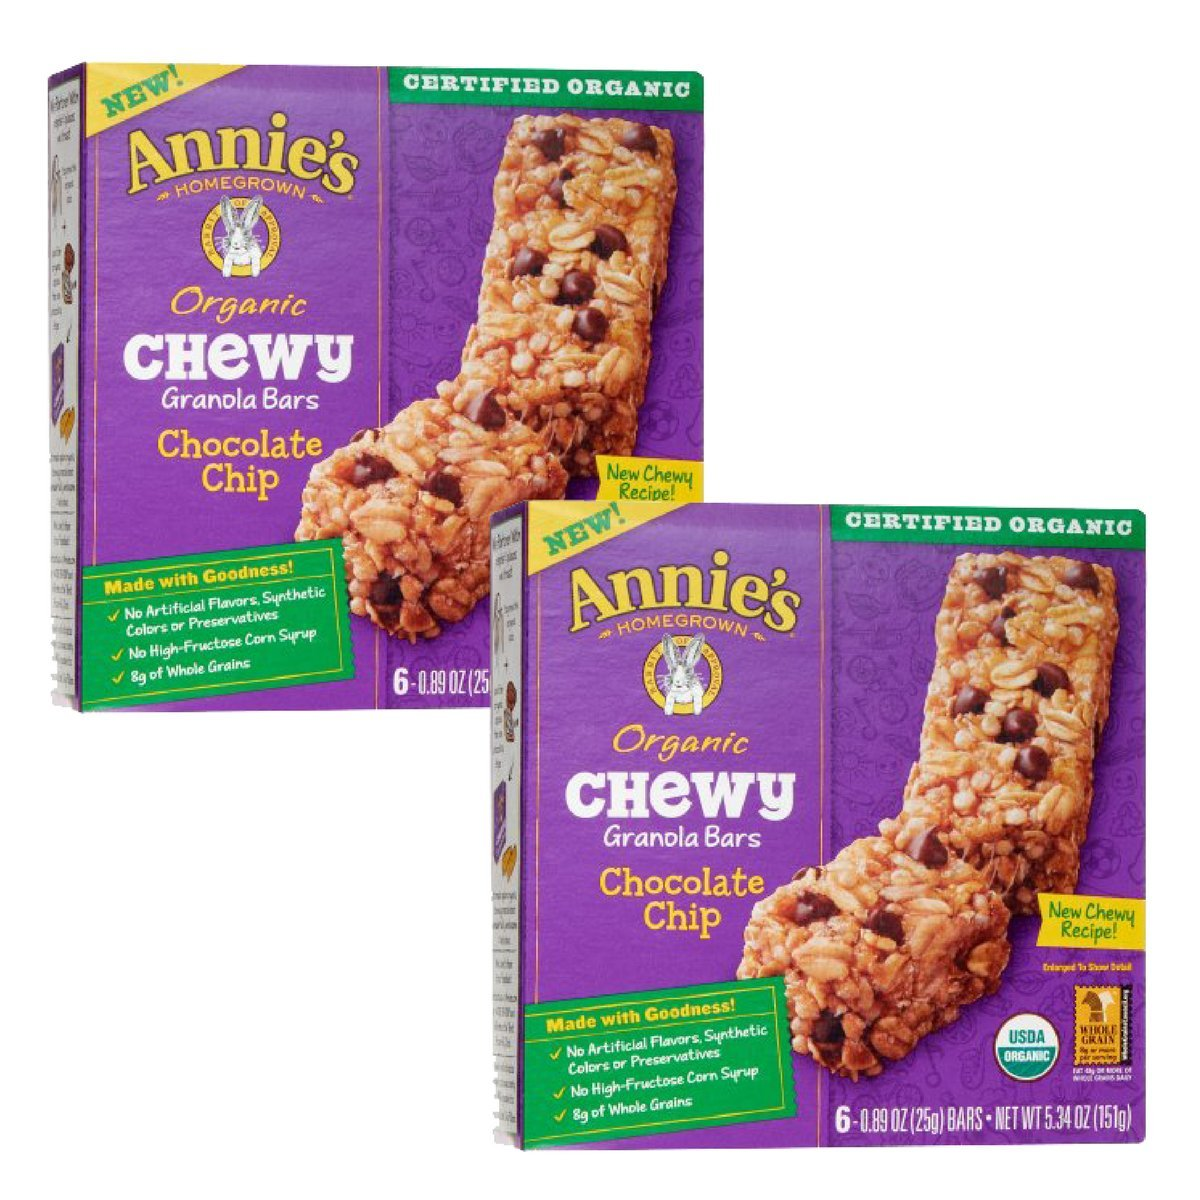 Annie's Organic Chewy Chocolate Chip Granola Bars 6 ct (Pack of 2) by Annie's Homegrown